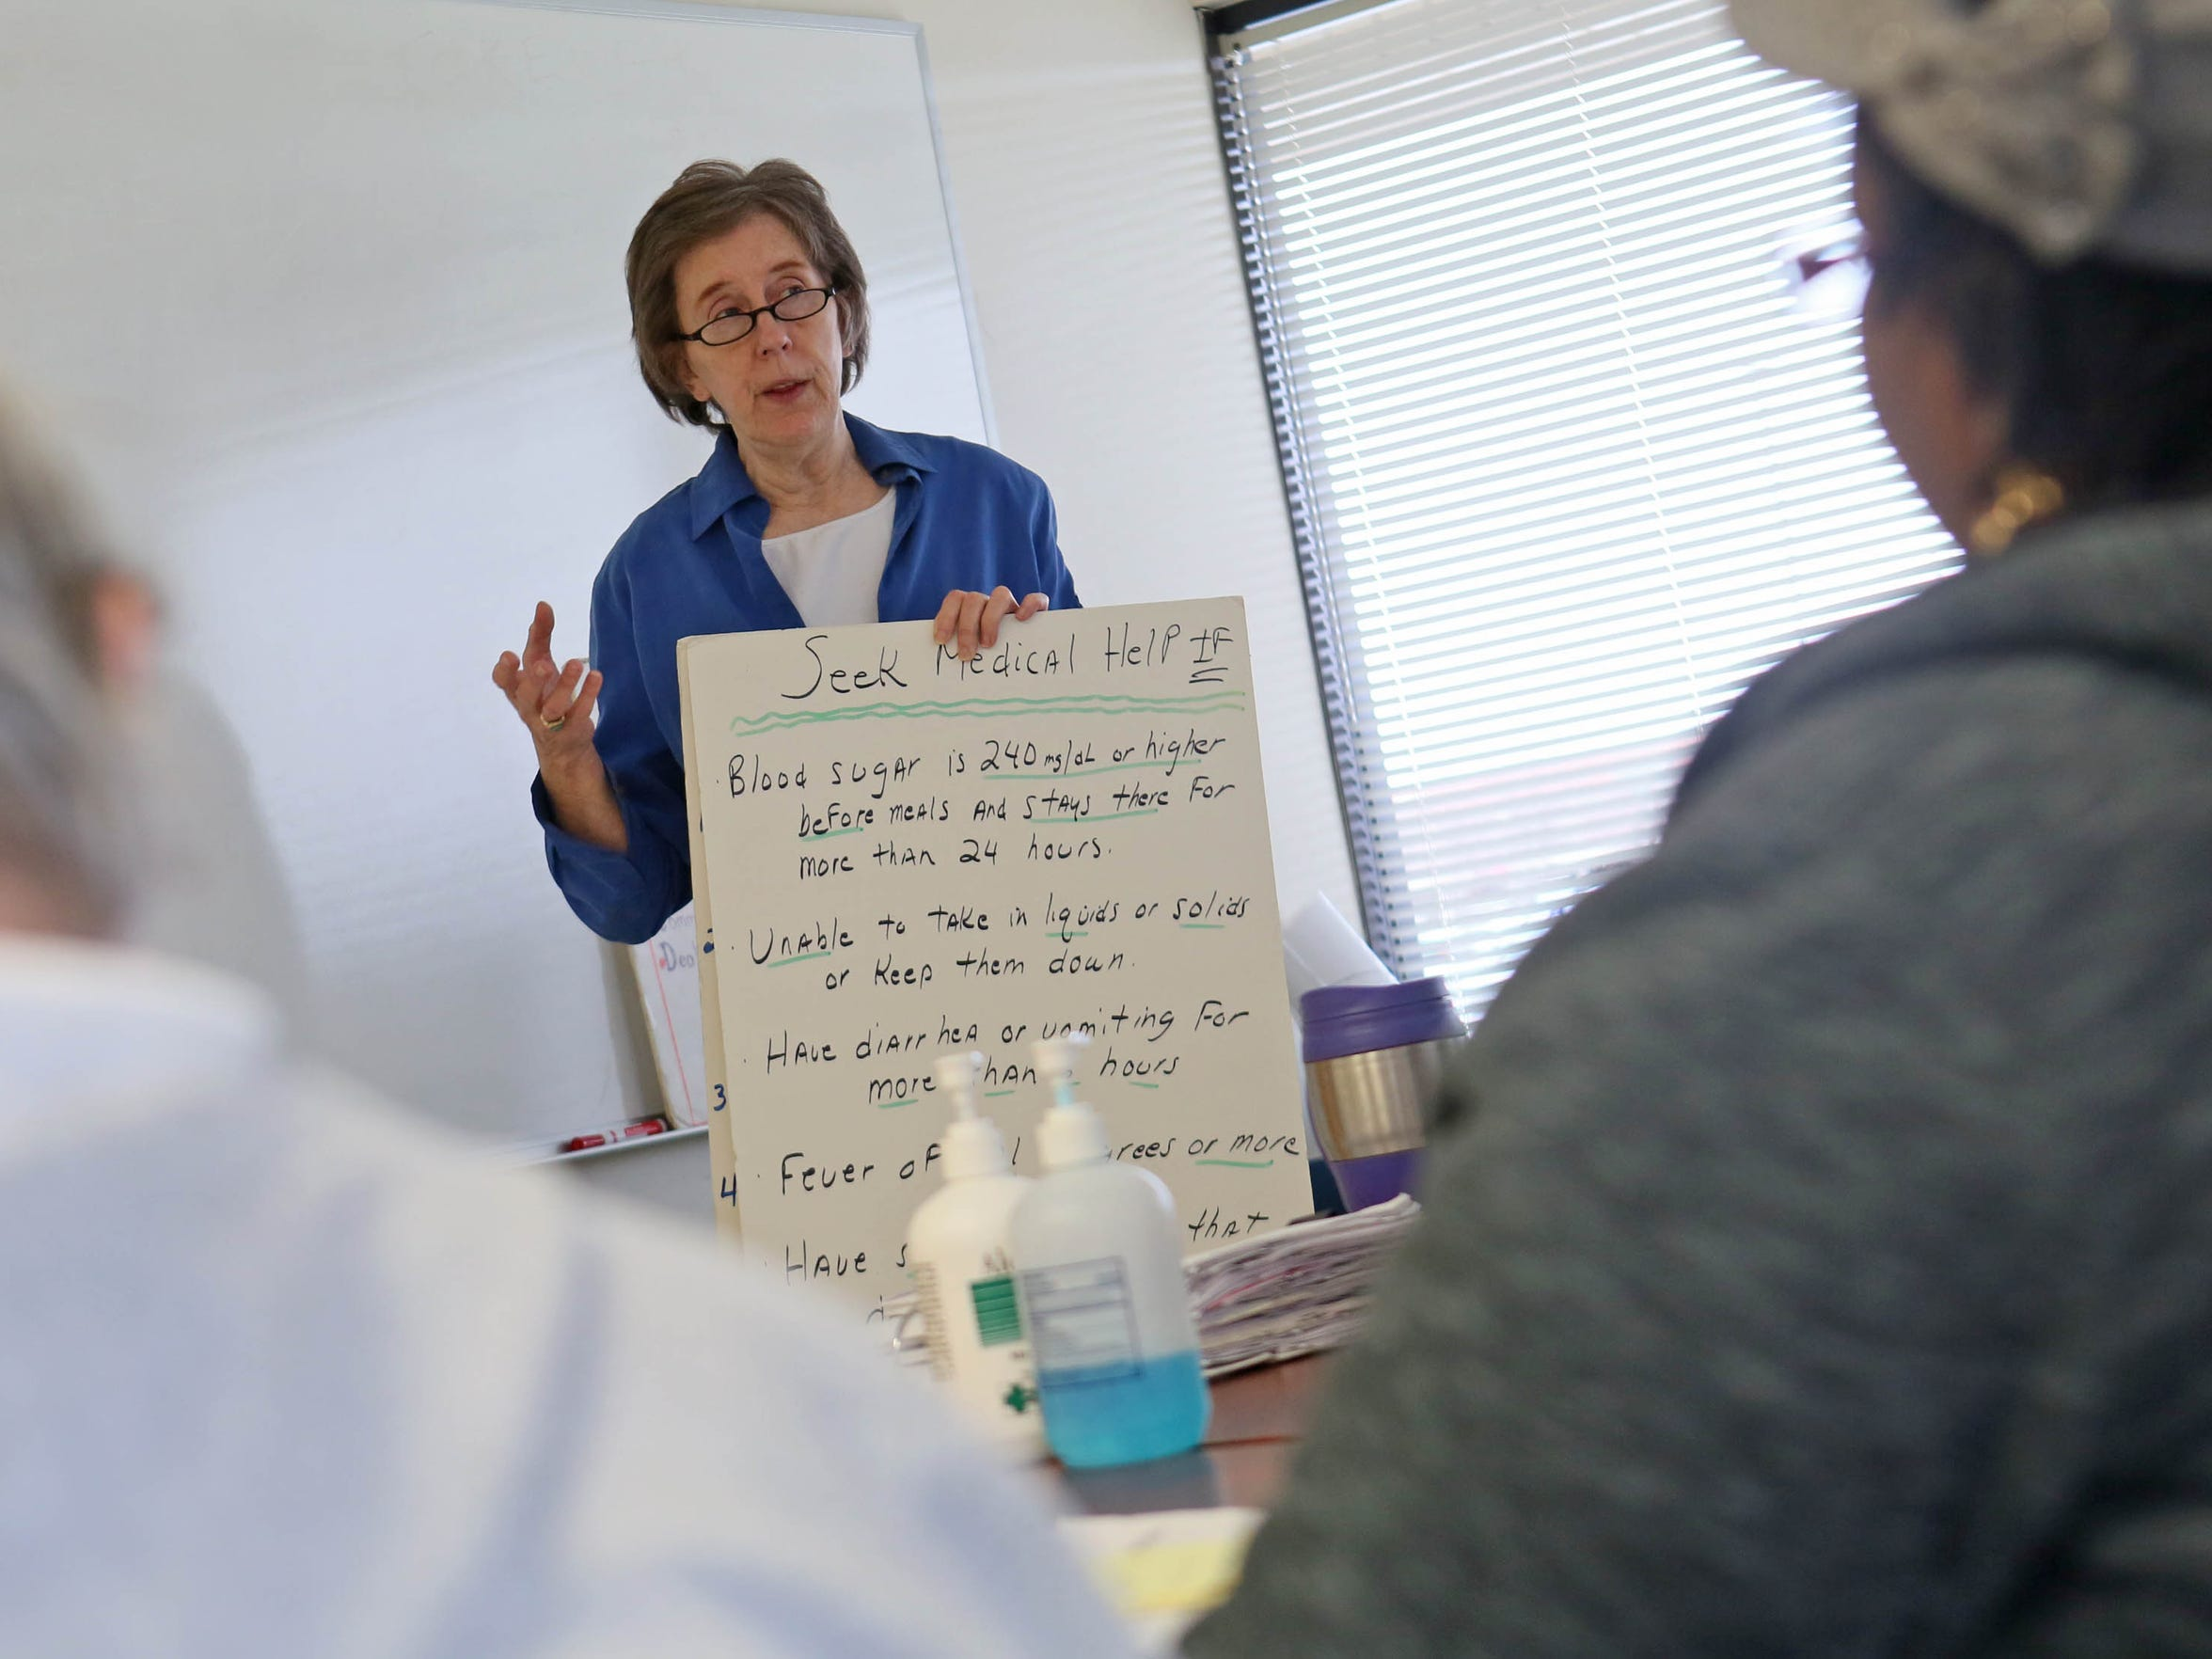 Kathy Stroh, a certified diabetes educator for Westside Family Healthcare, leads a class on diabetes self management. Type 2 diabetes is more common than Type 1 diabetes, an autoimmune condition.